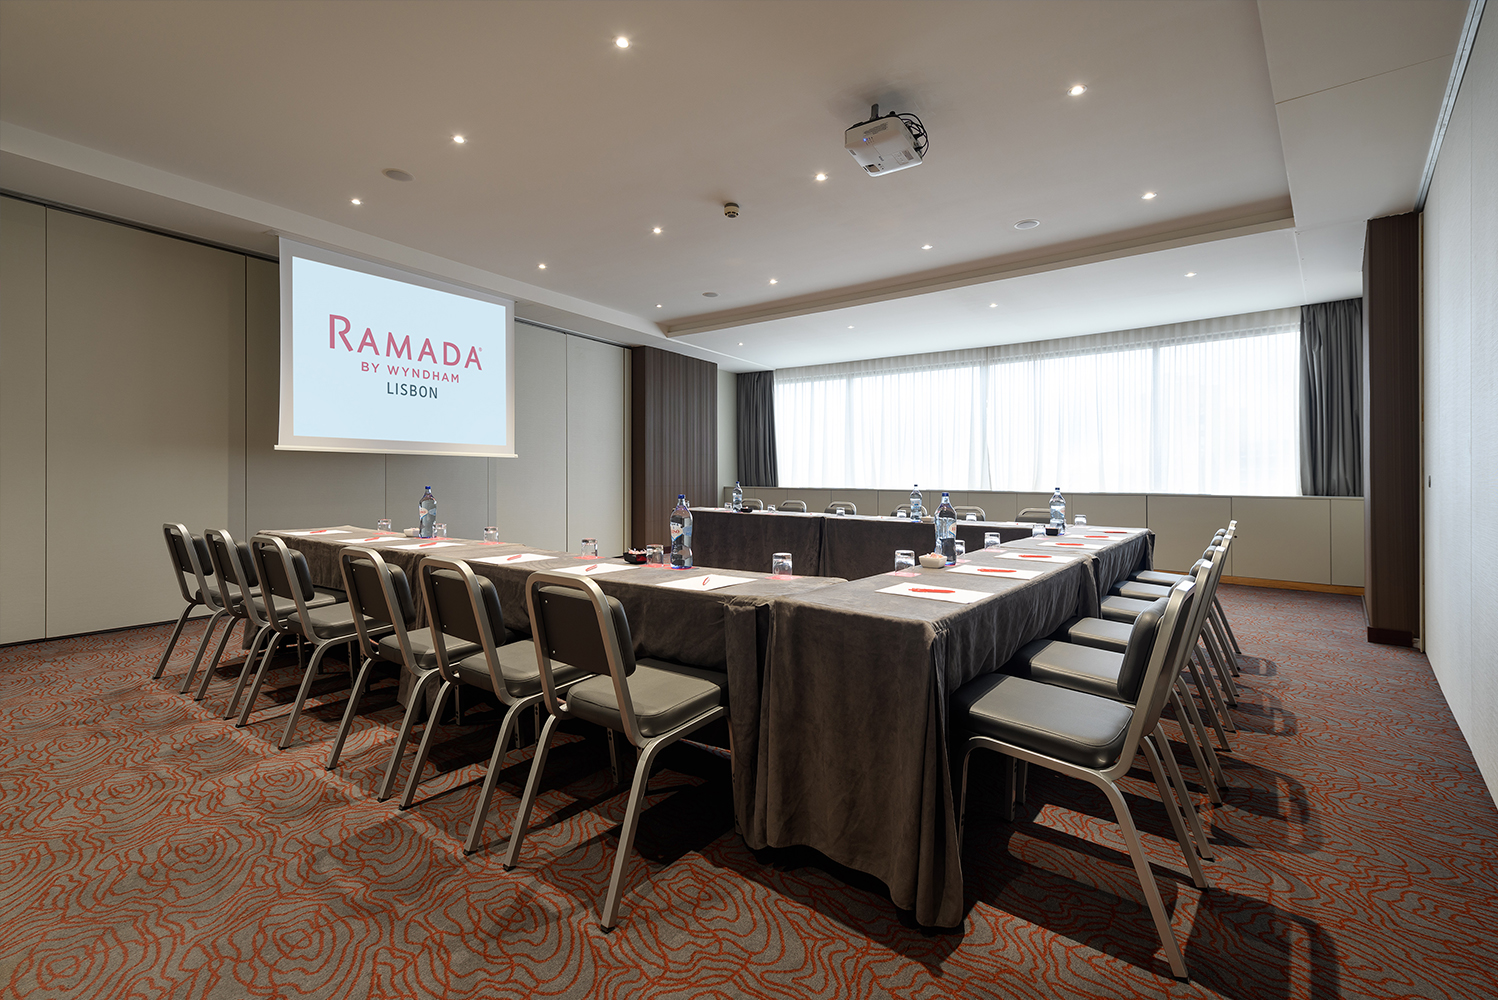 Ramada Lisbon, former Olaias Park Hotel, refurbished its meeting and event rooms following an investment by DHM - Discovery Hotel Management.